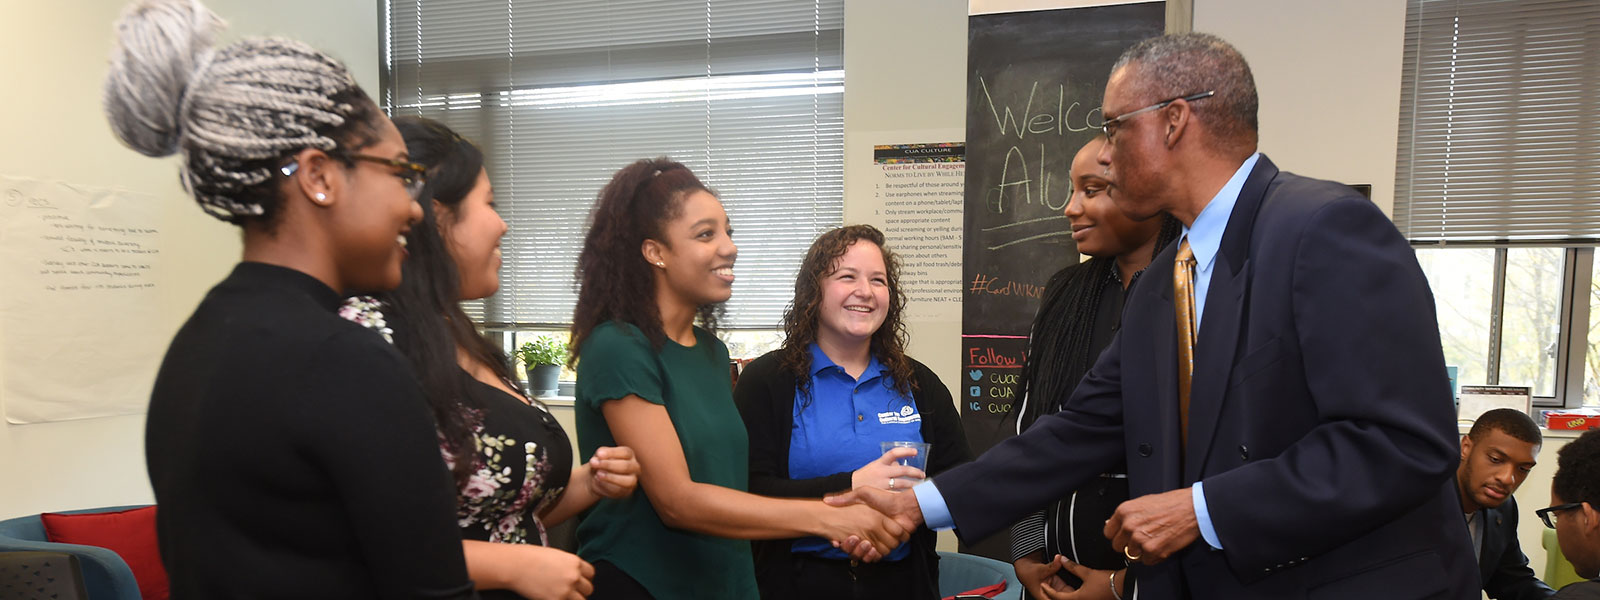 Students smiling and shaking hands with administrator